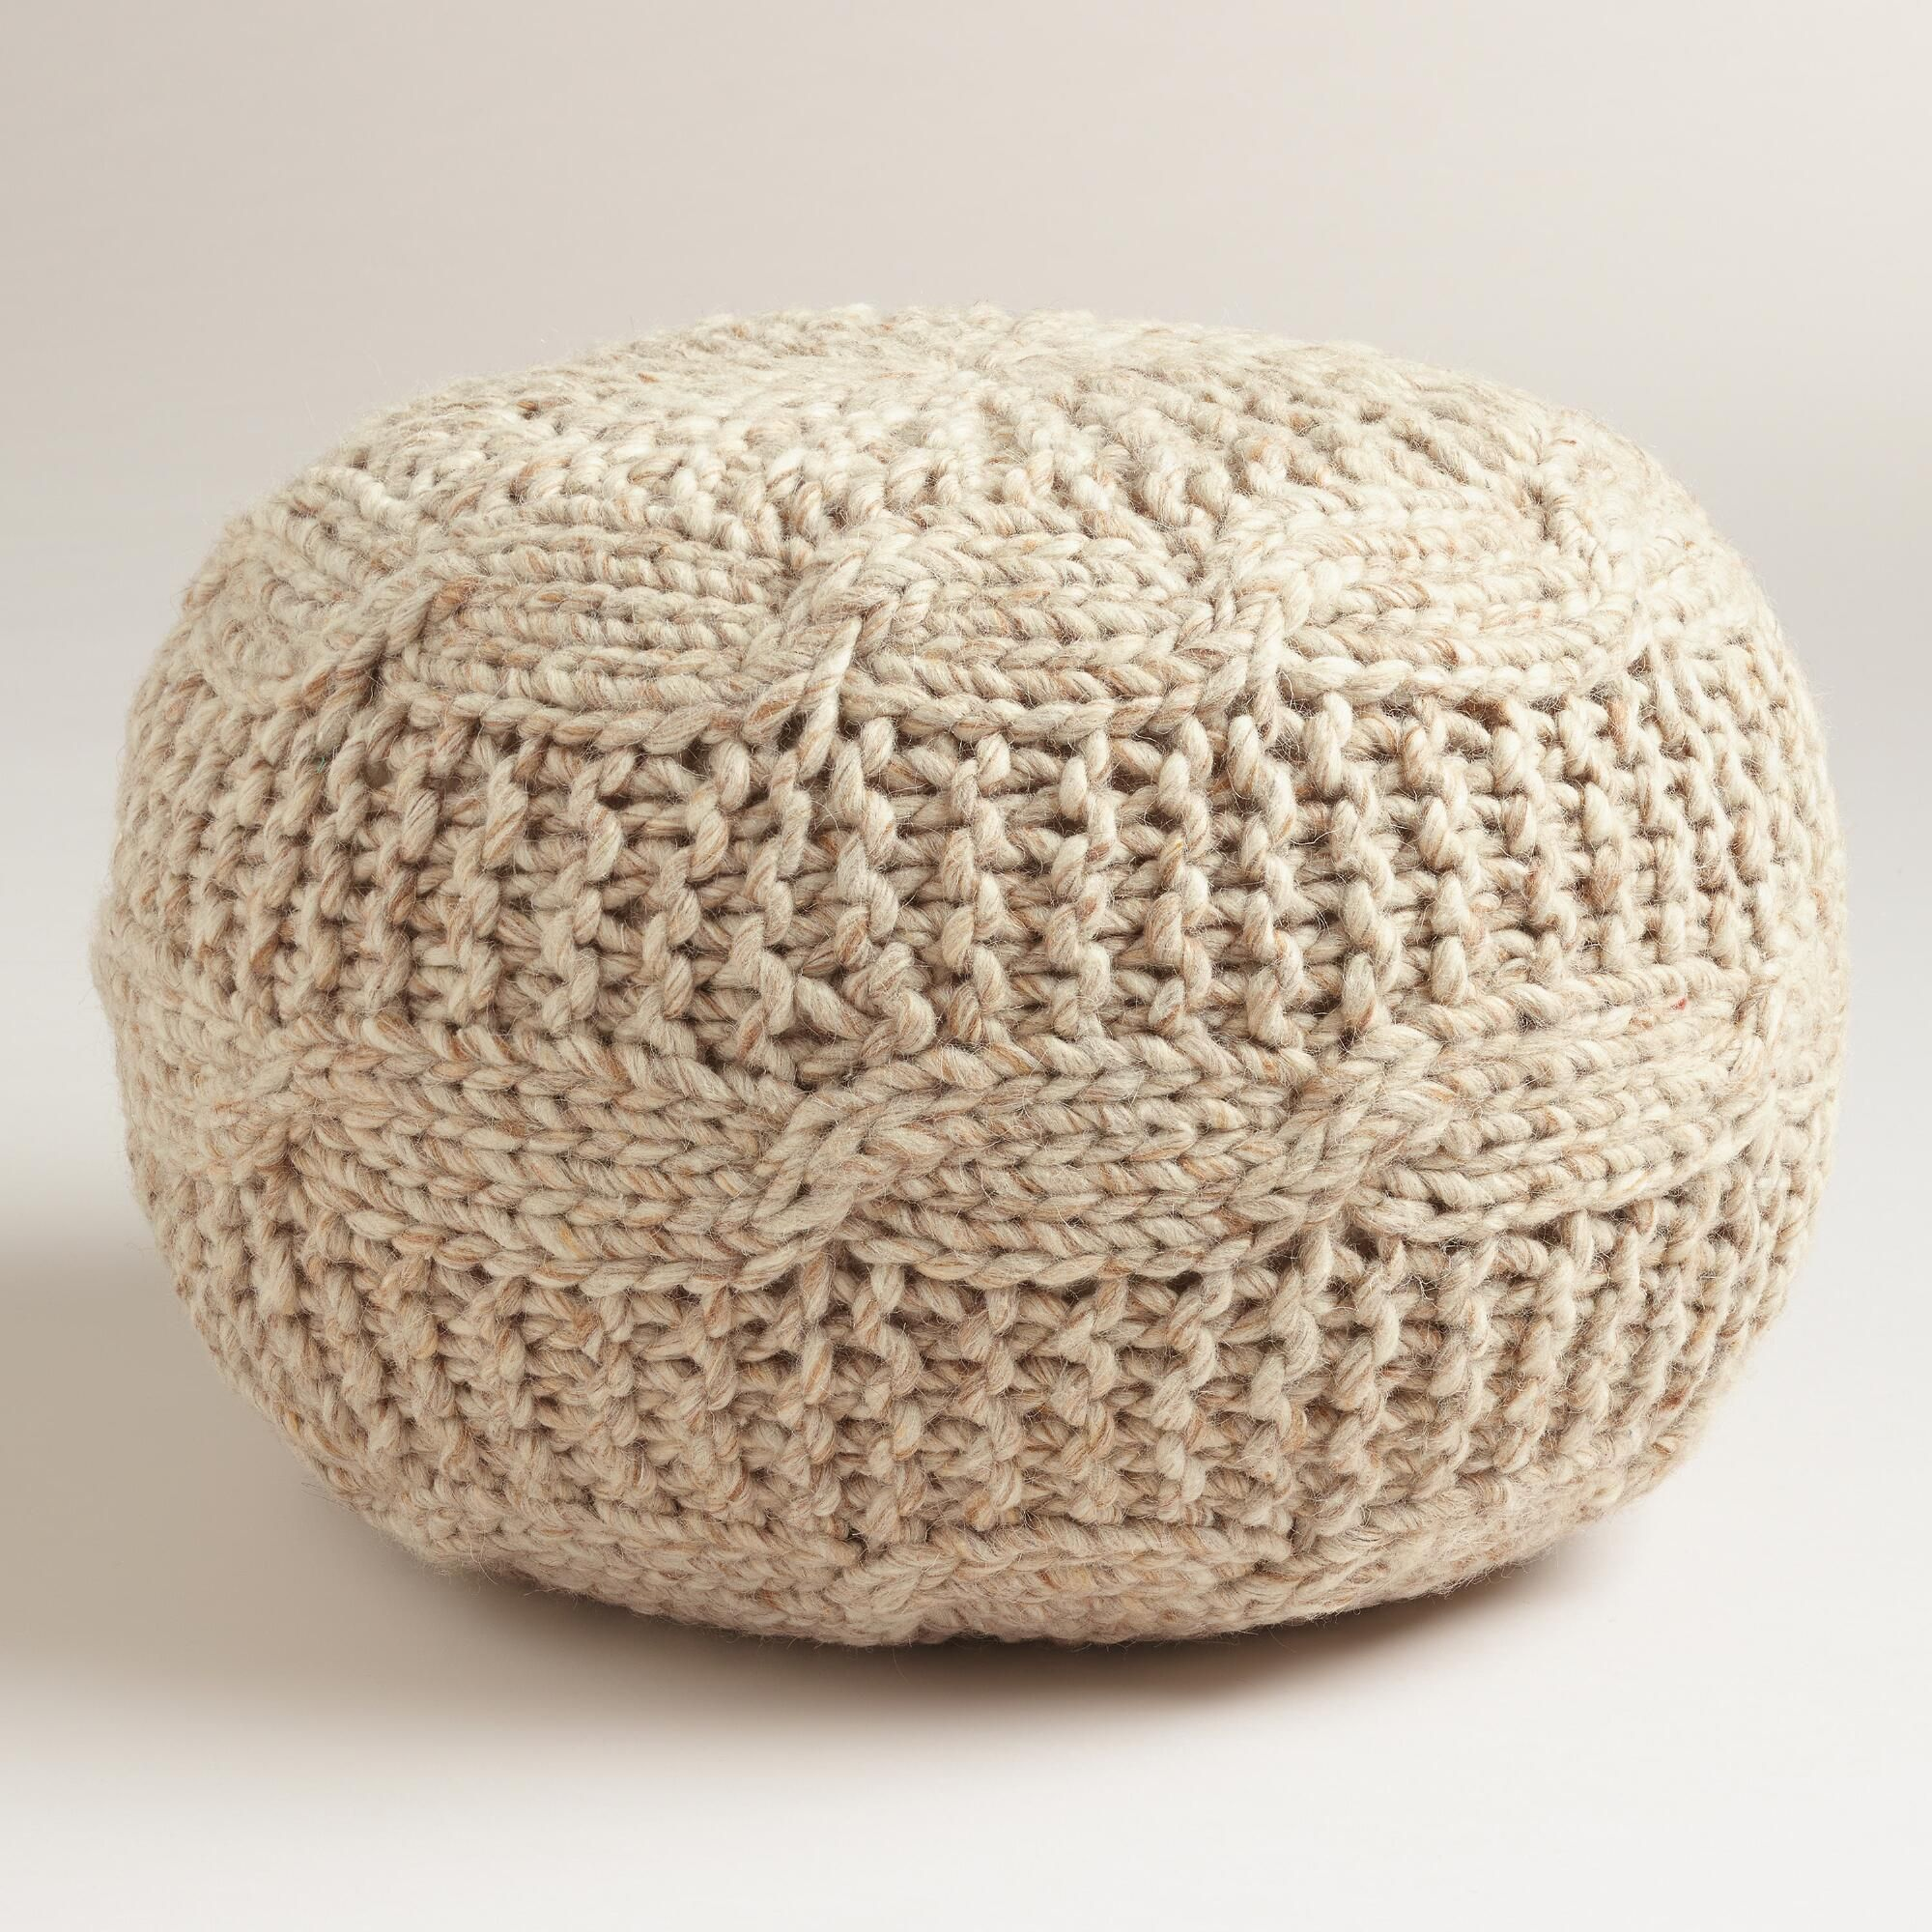 Taupe Heather Sweater Pouf | Small spaces, Cozy and Spaces